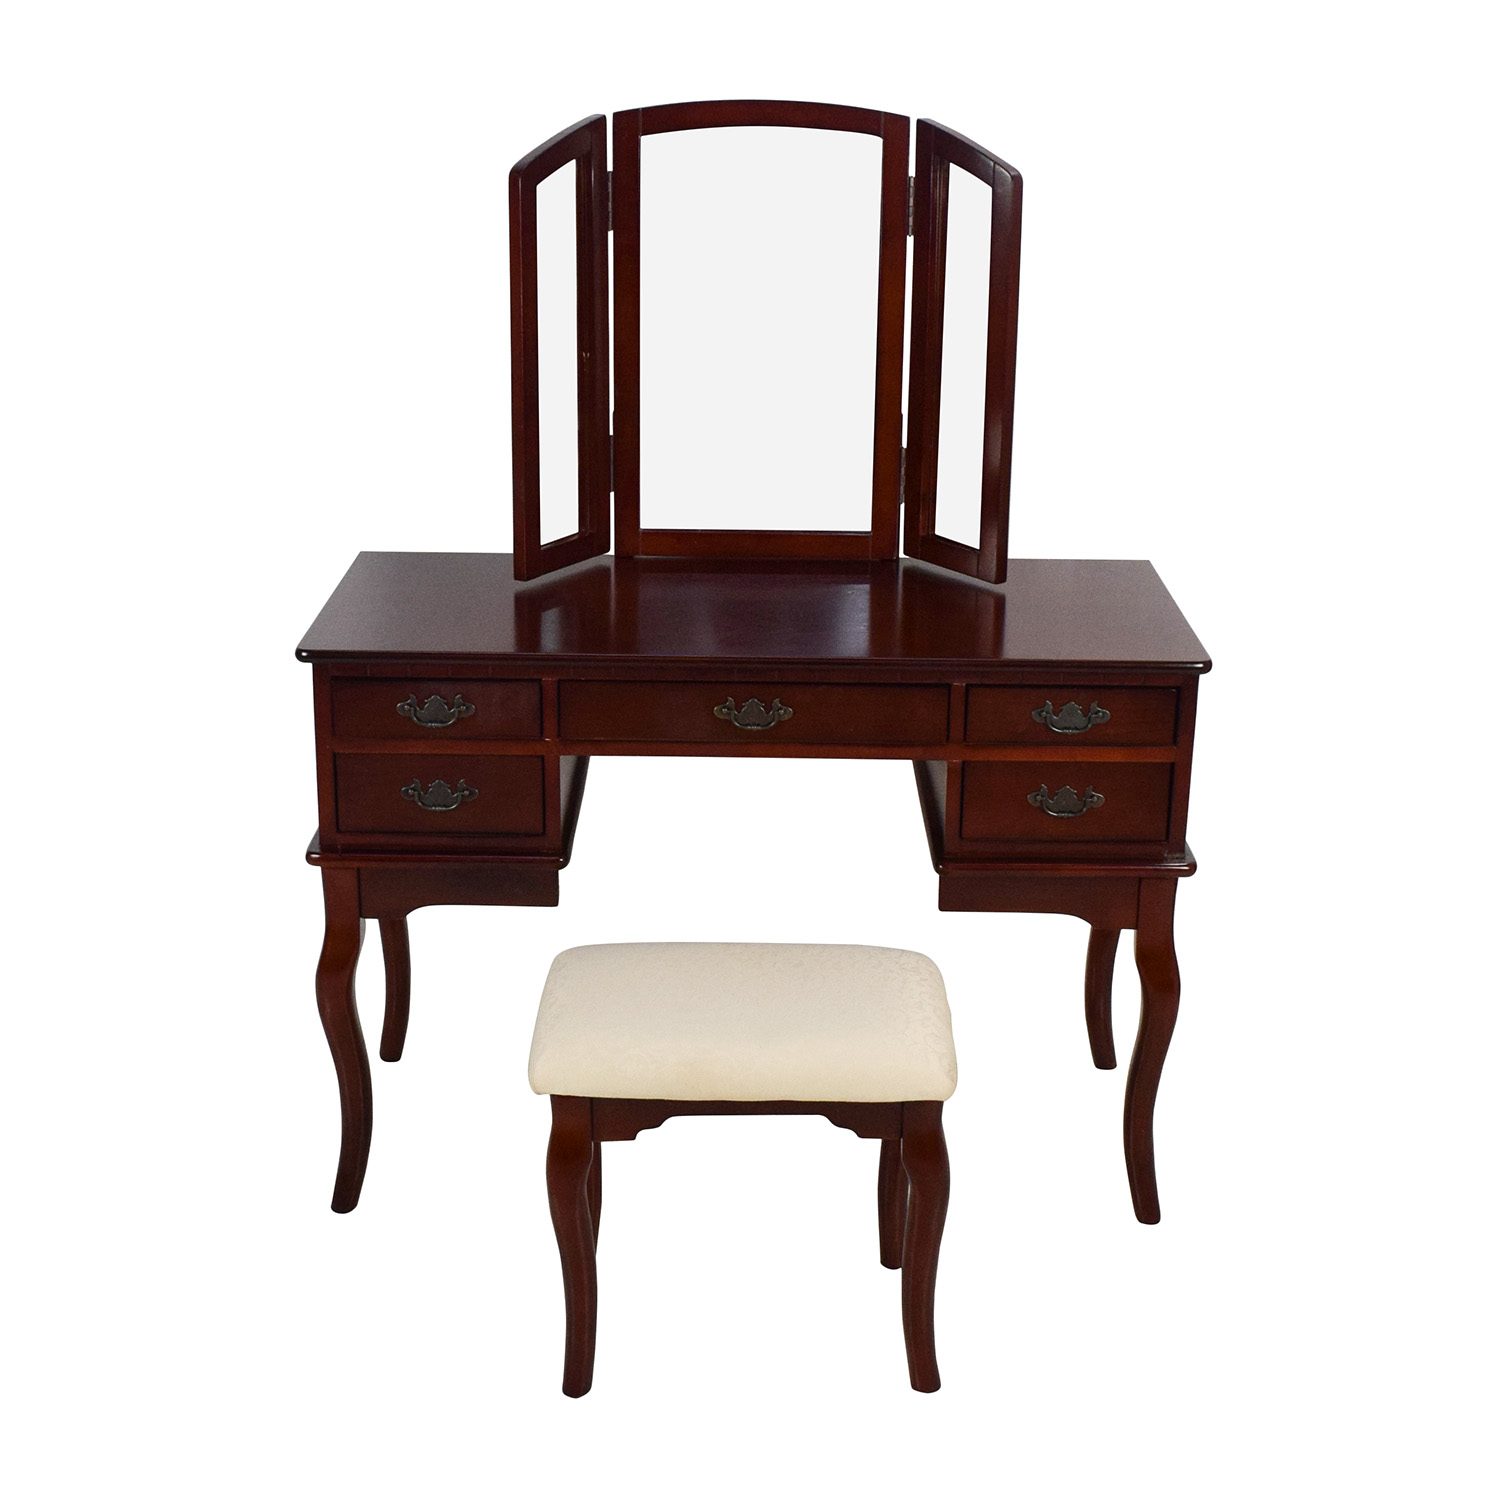 off hardwood vanity with matching stool tables used accent table brown coffee for sectional tiny best outdoor furniture covers nite stands home goods tablecloths wood living room